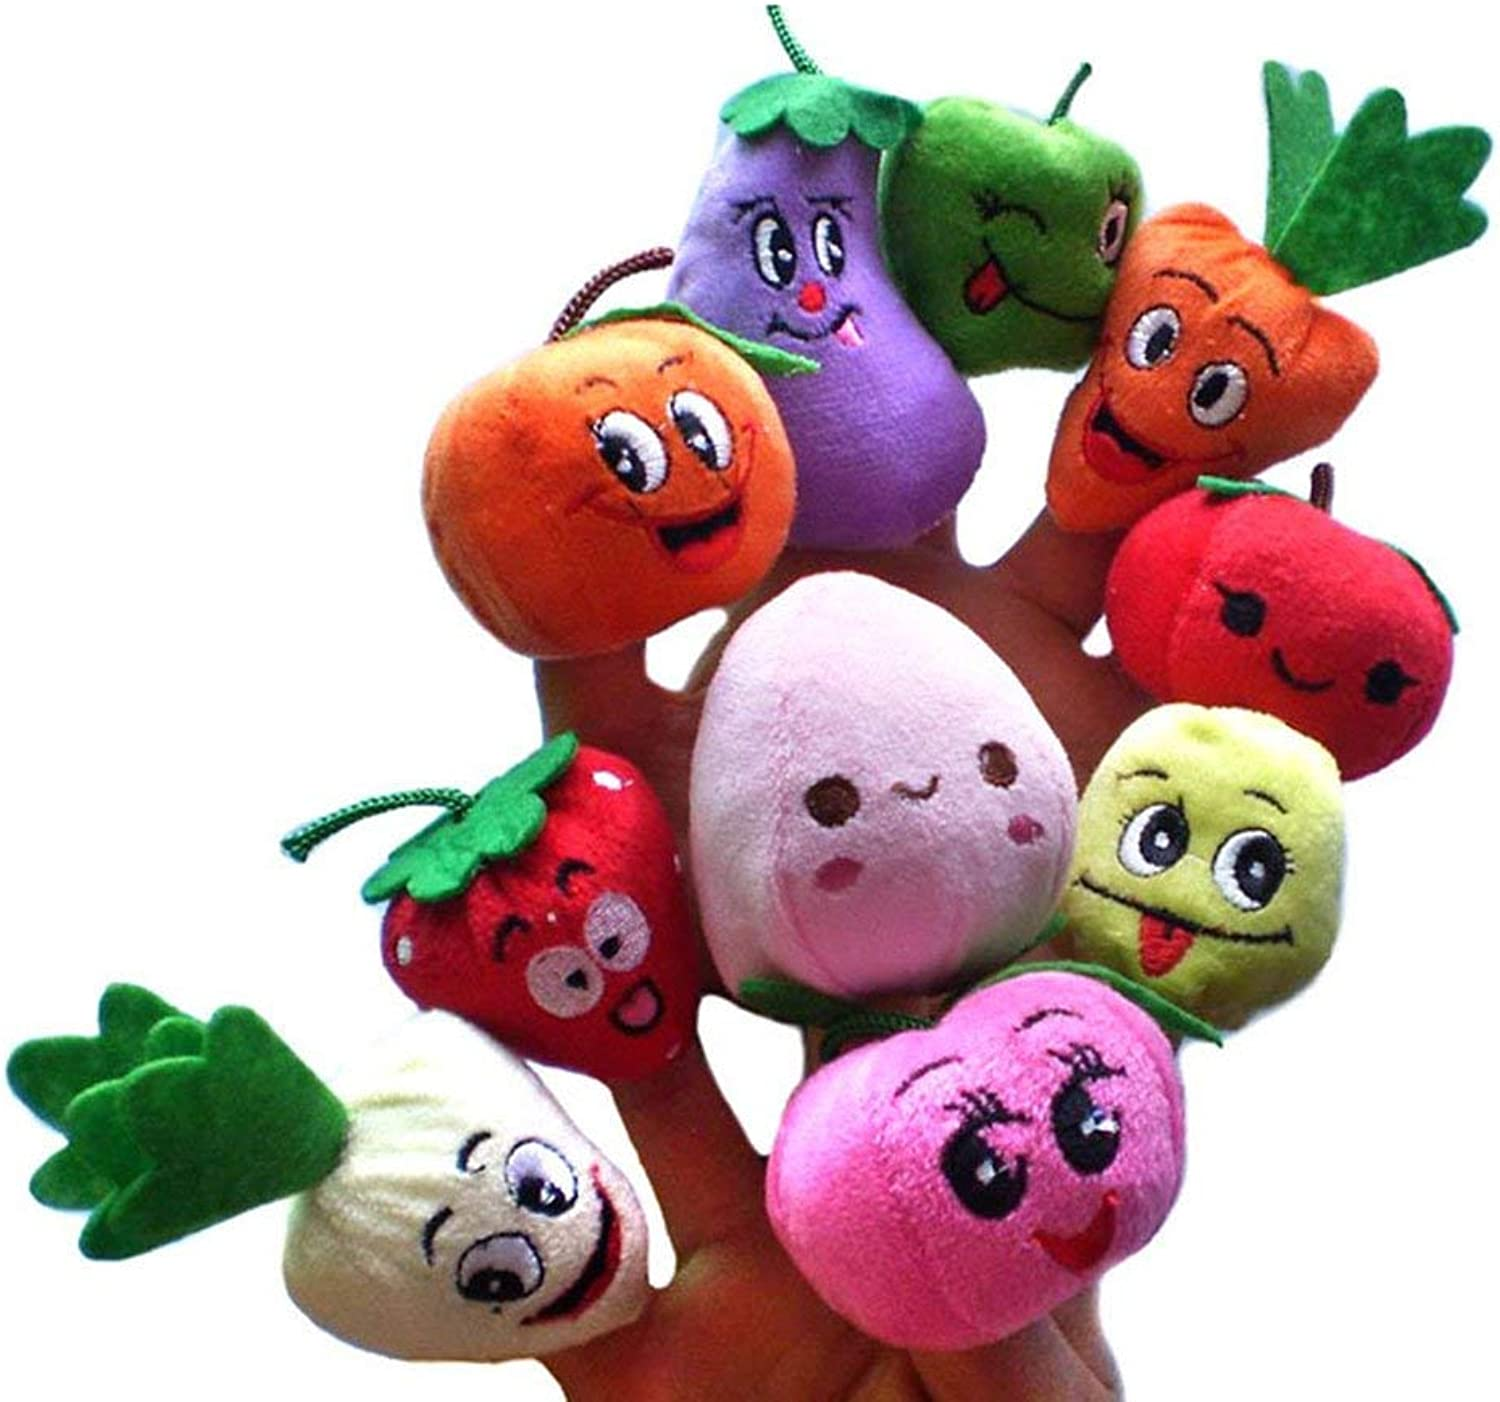 Finger Puppets, TOYMYTOY Fruits and Vegetables Story Puppets Preschool Education Toys 10pcs